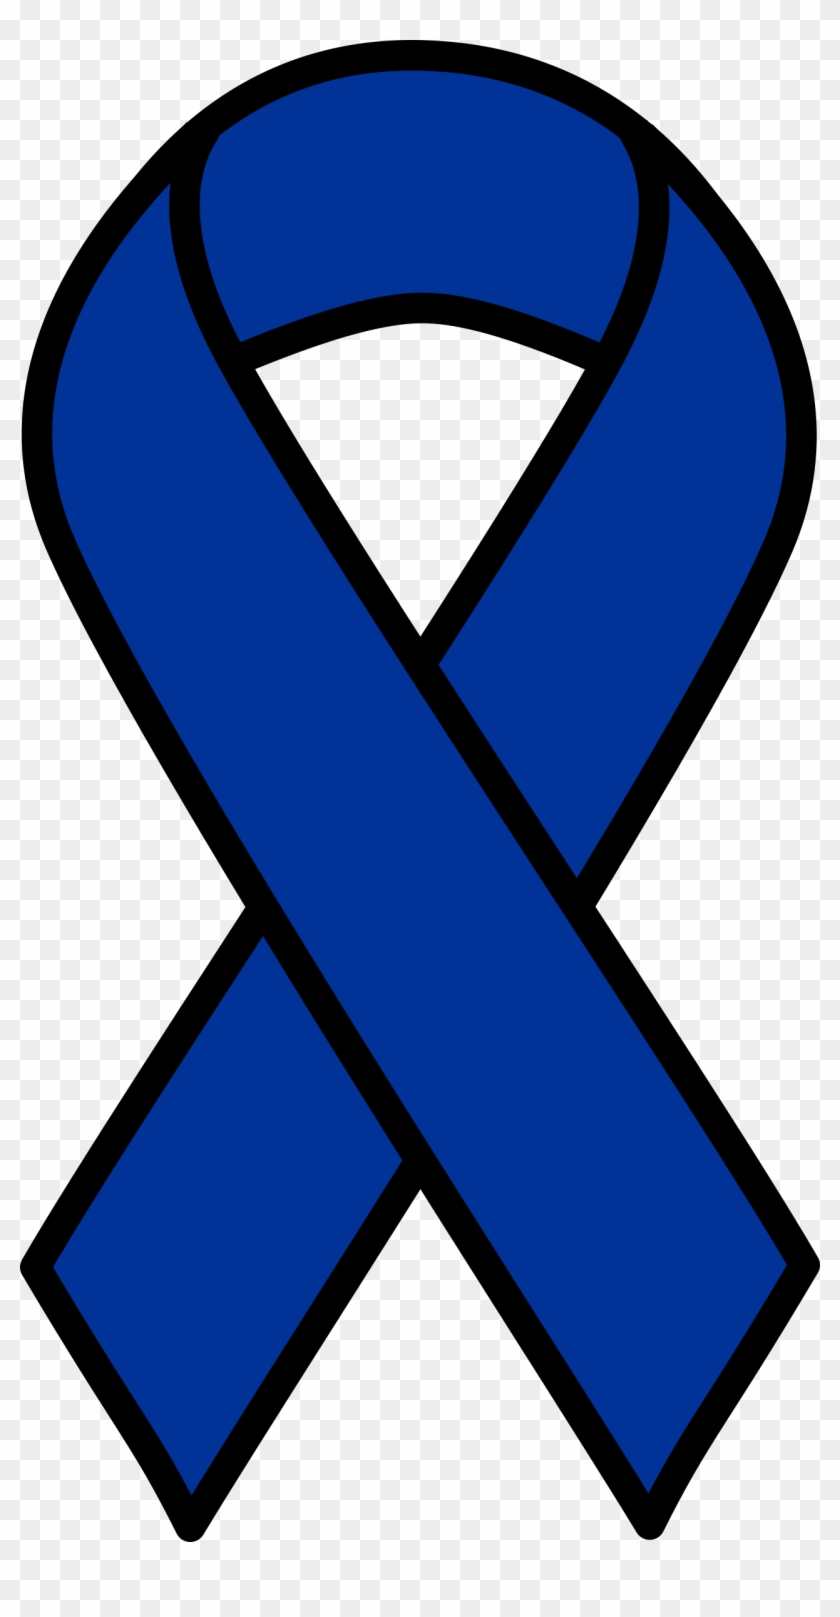 28 clipart blue clipart library 28 Collection Of Blue Ribbon Clipart Black And White - Colon Cancer ... clipart library